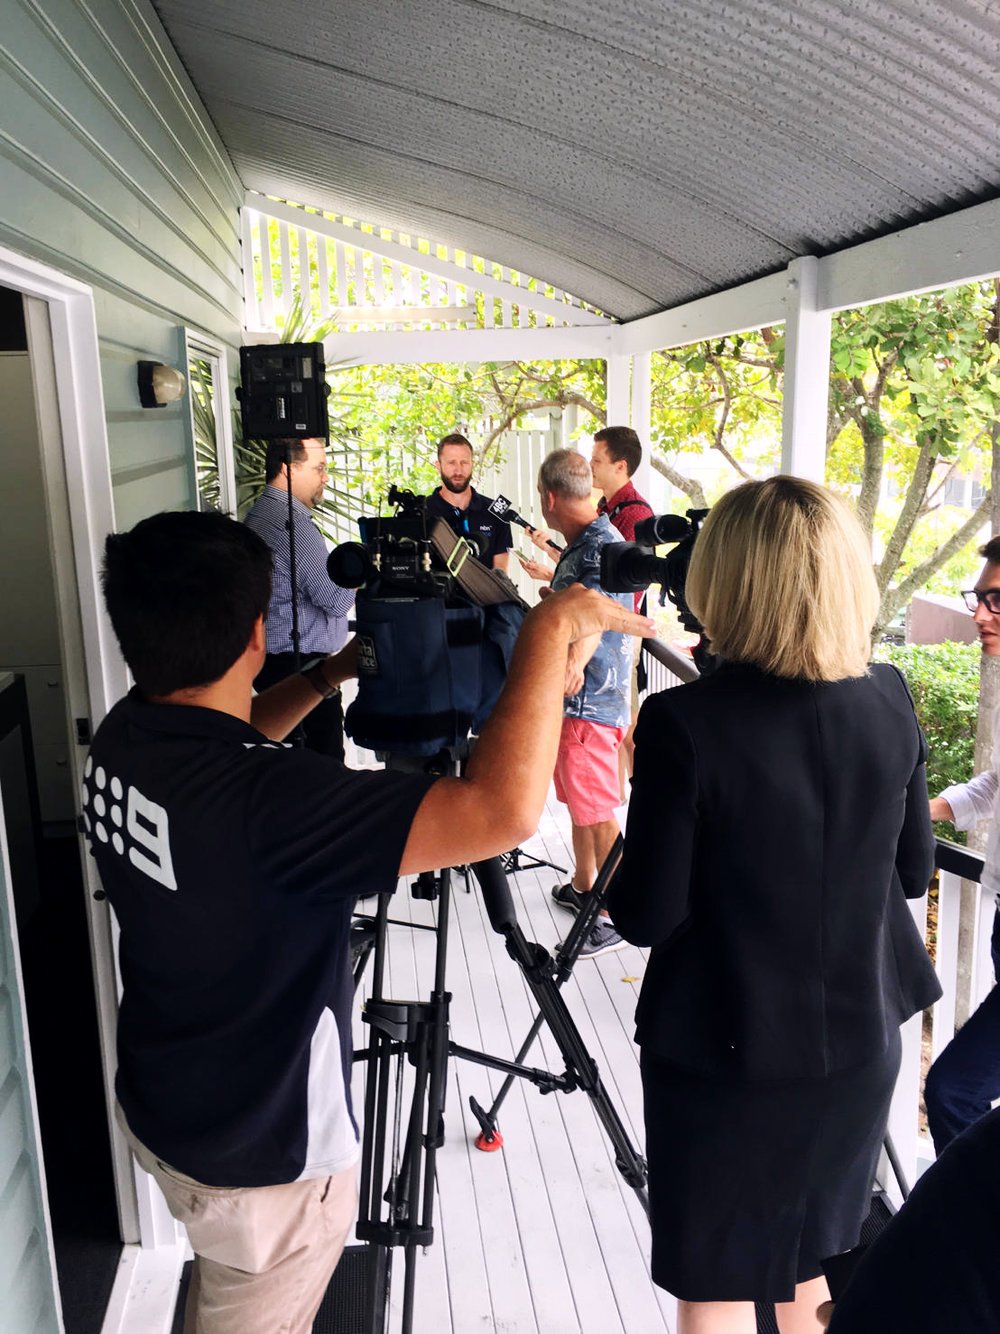 Behind the scenes of the nbn press conference